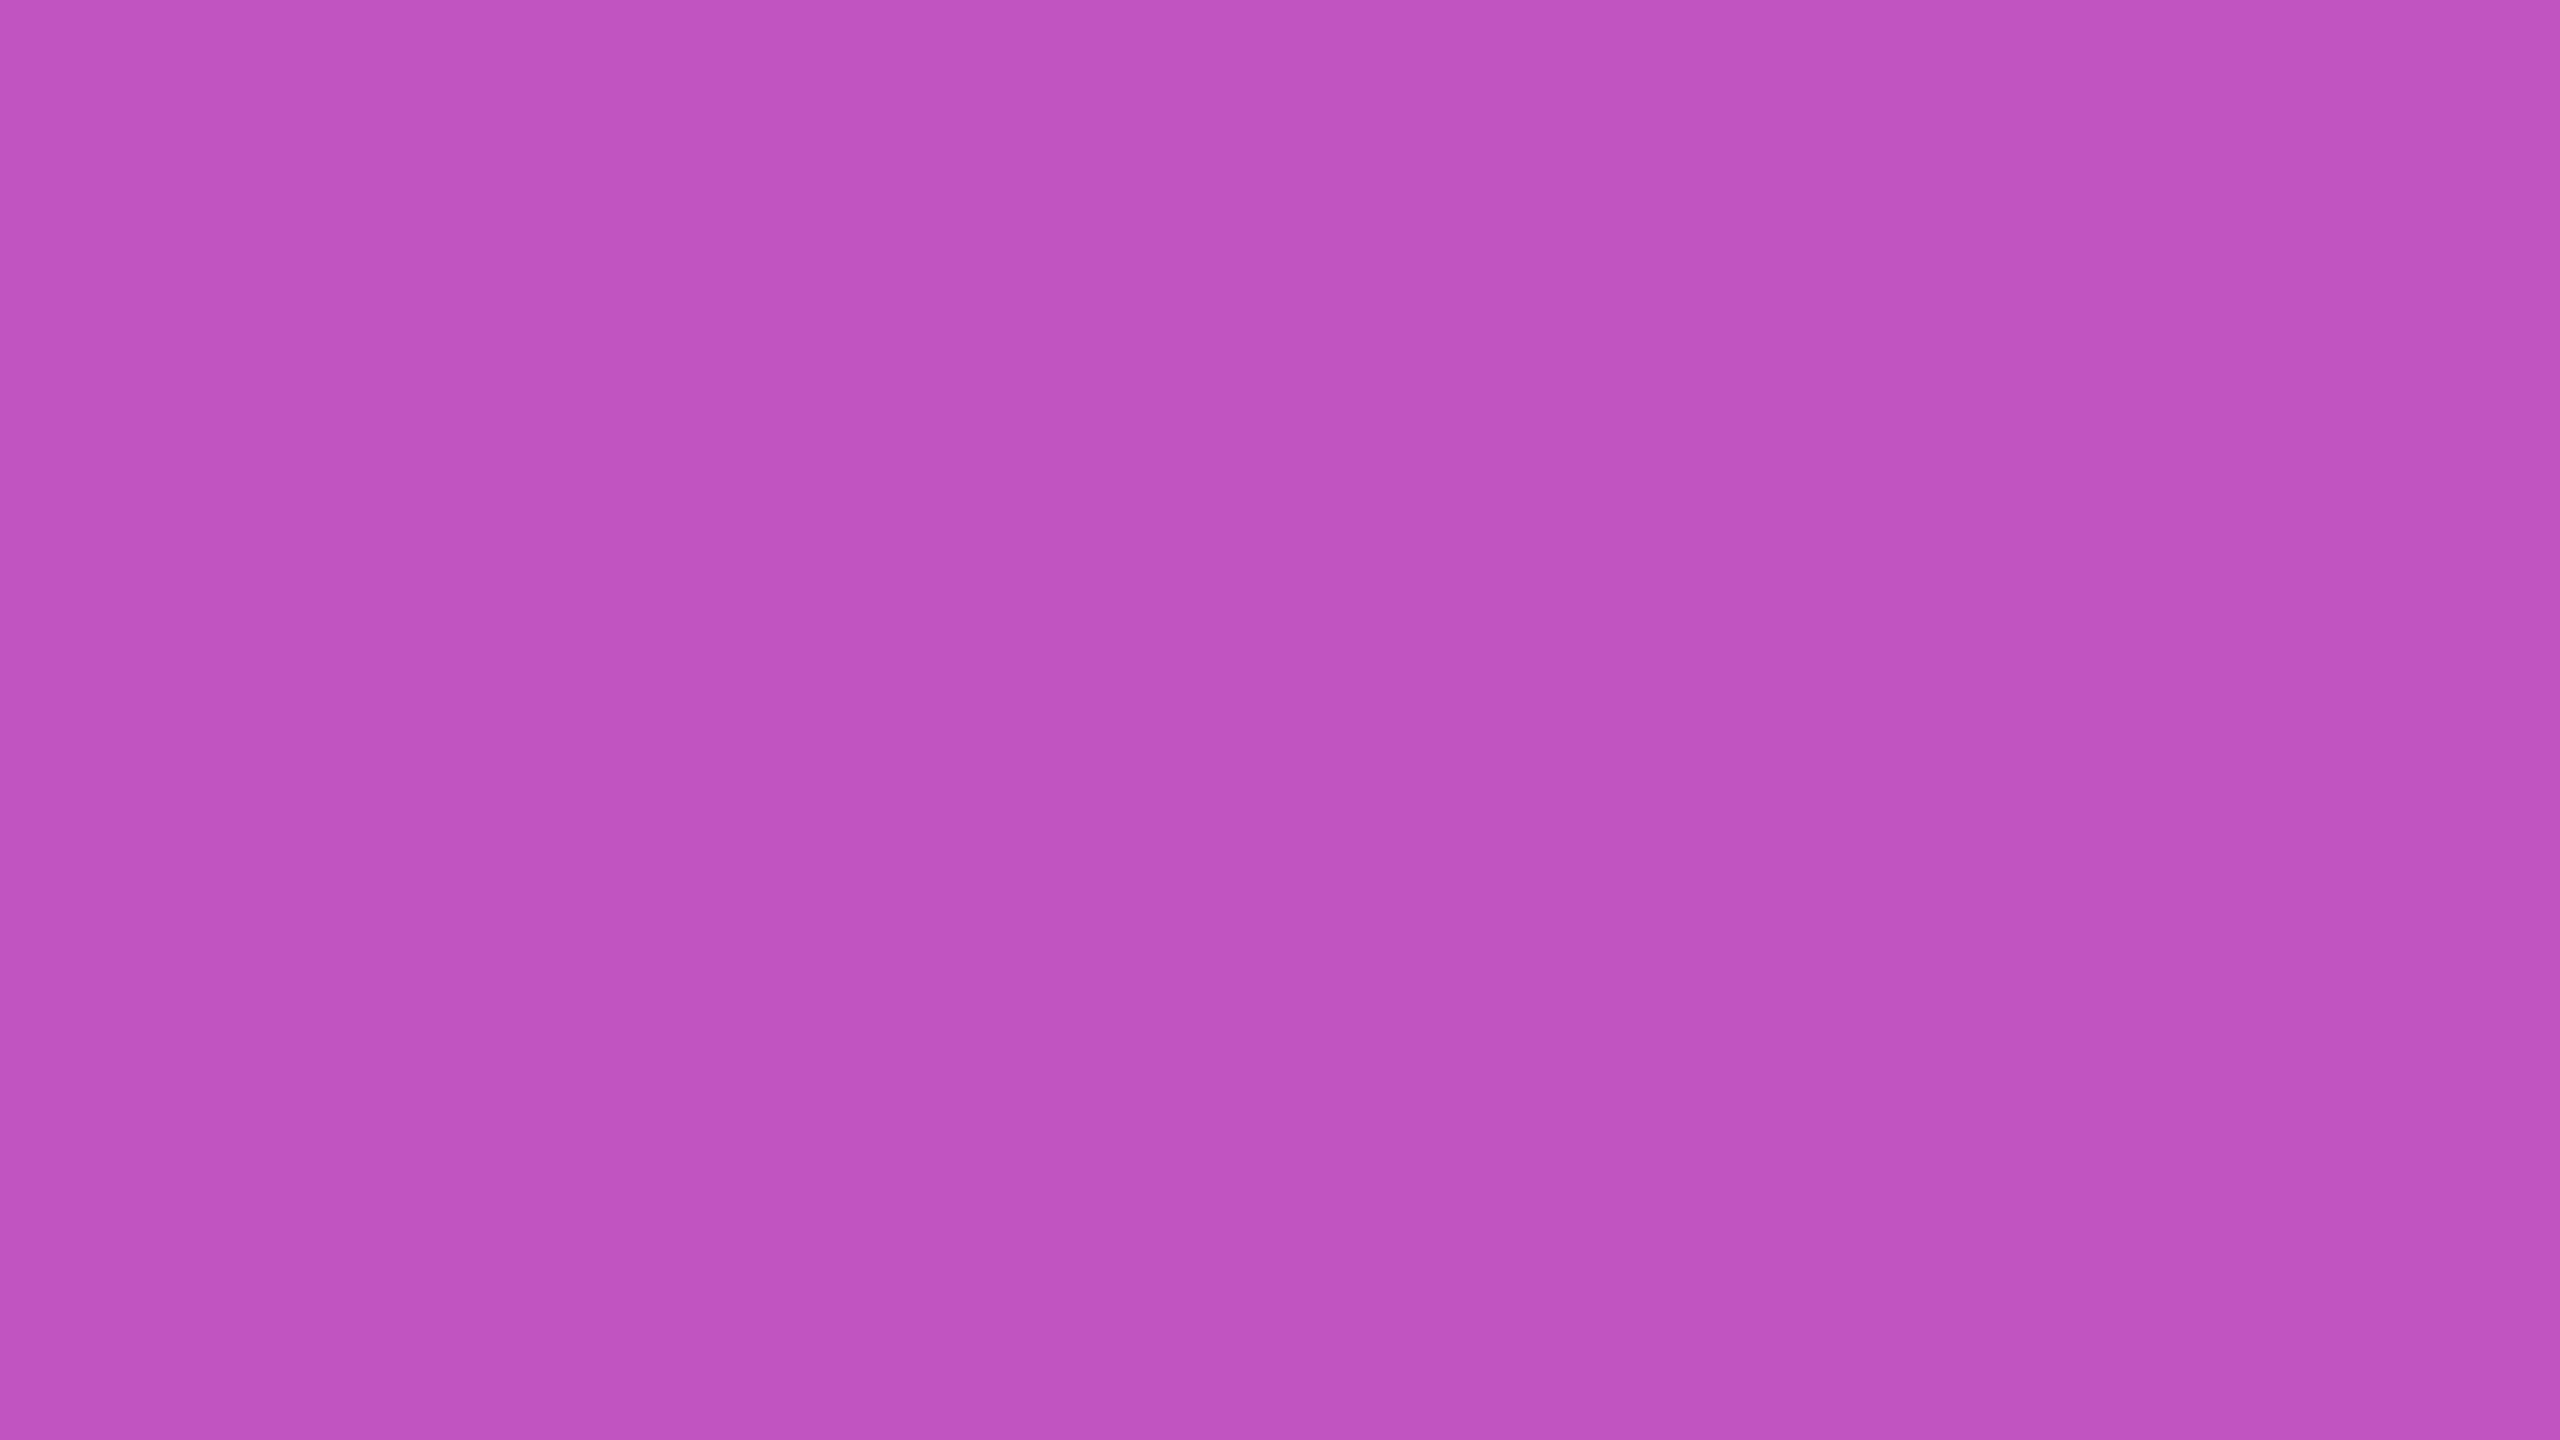 2560x1440 Fuchsia Crayola Solid Color Background